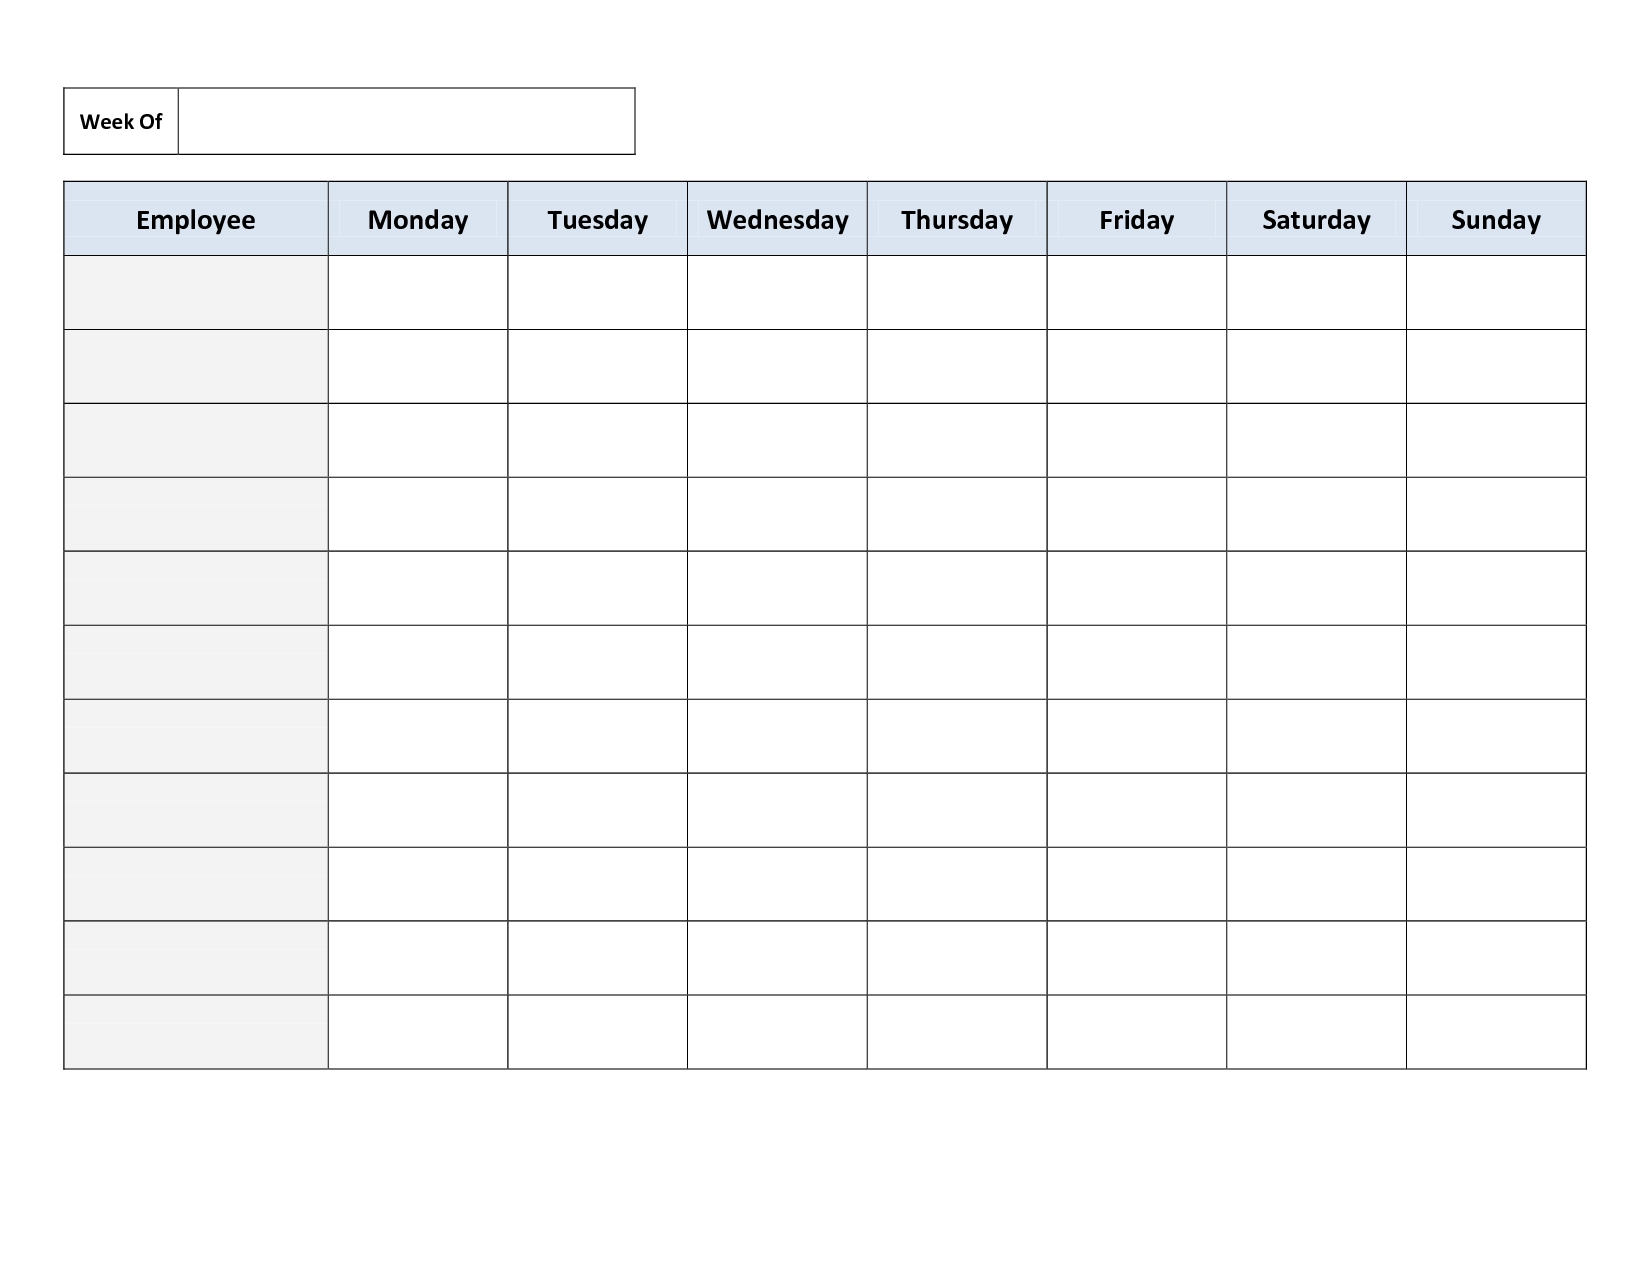 Monday To Y Schedule Template Weekly Friday Pdf Thru Saturday   Smorad inside Monday - Sunday Weekly Schedule